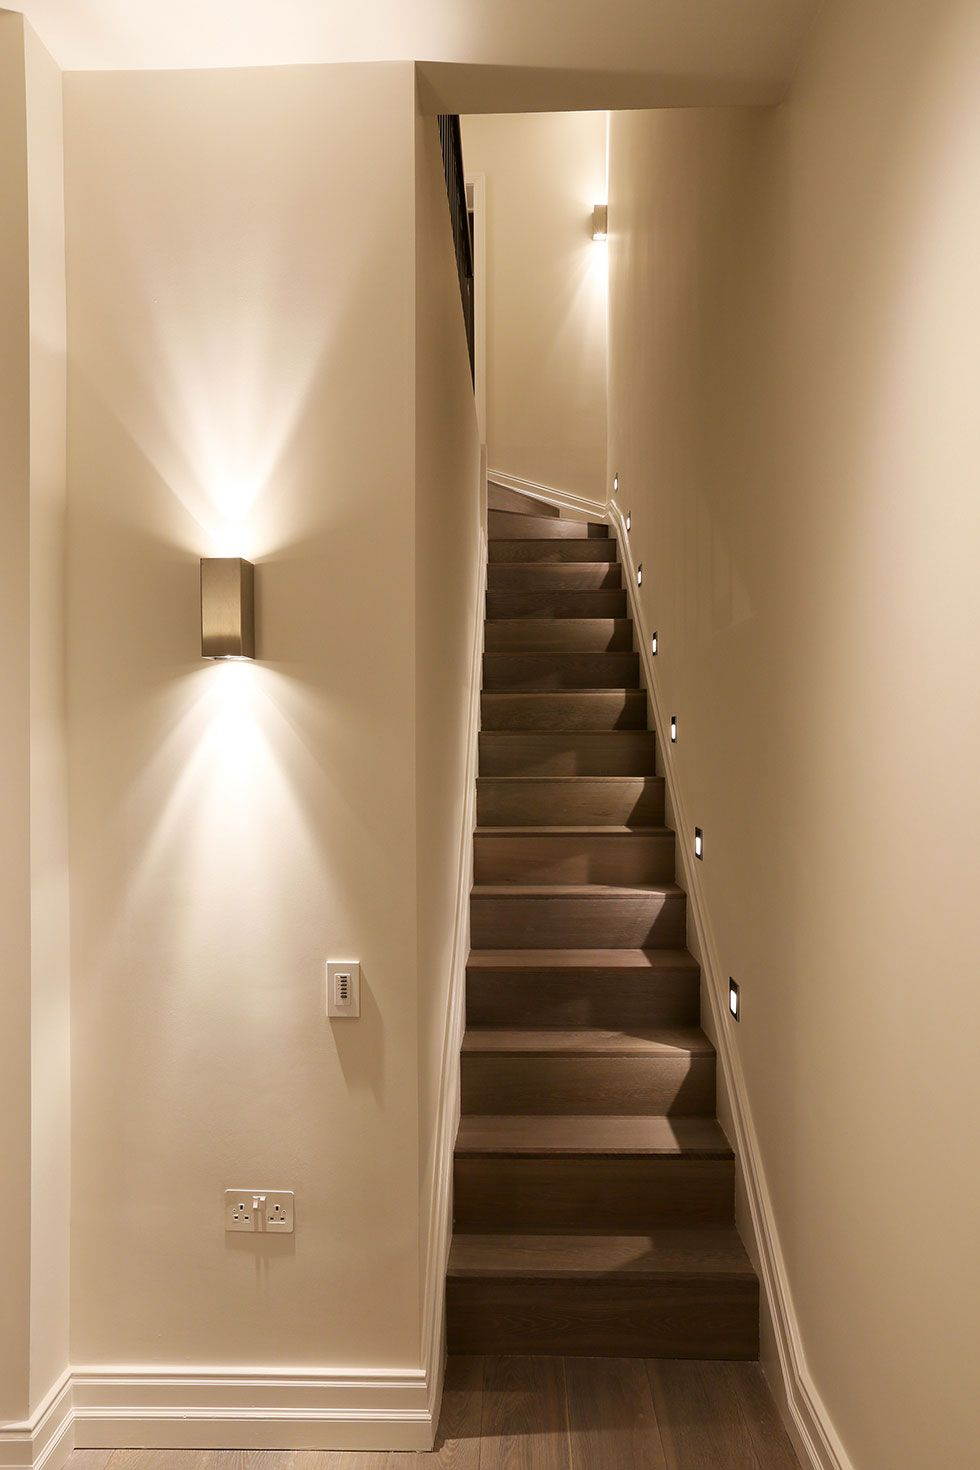 10 Most Popular Light For Stairways Ideas Let S Take A Look